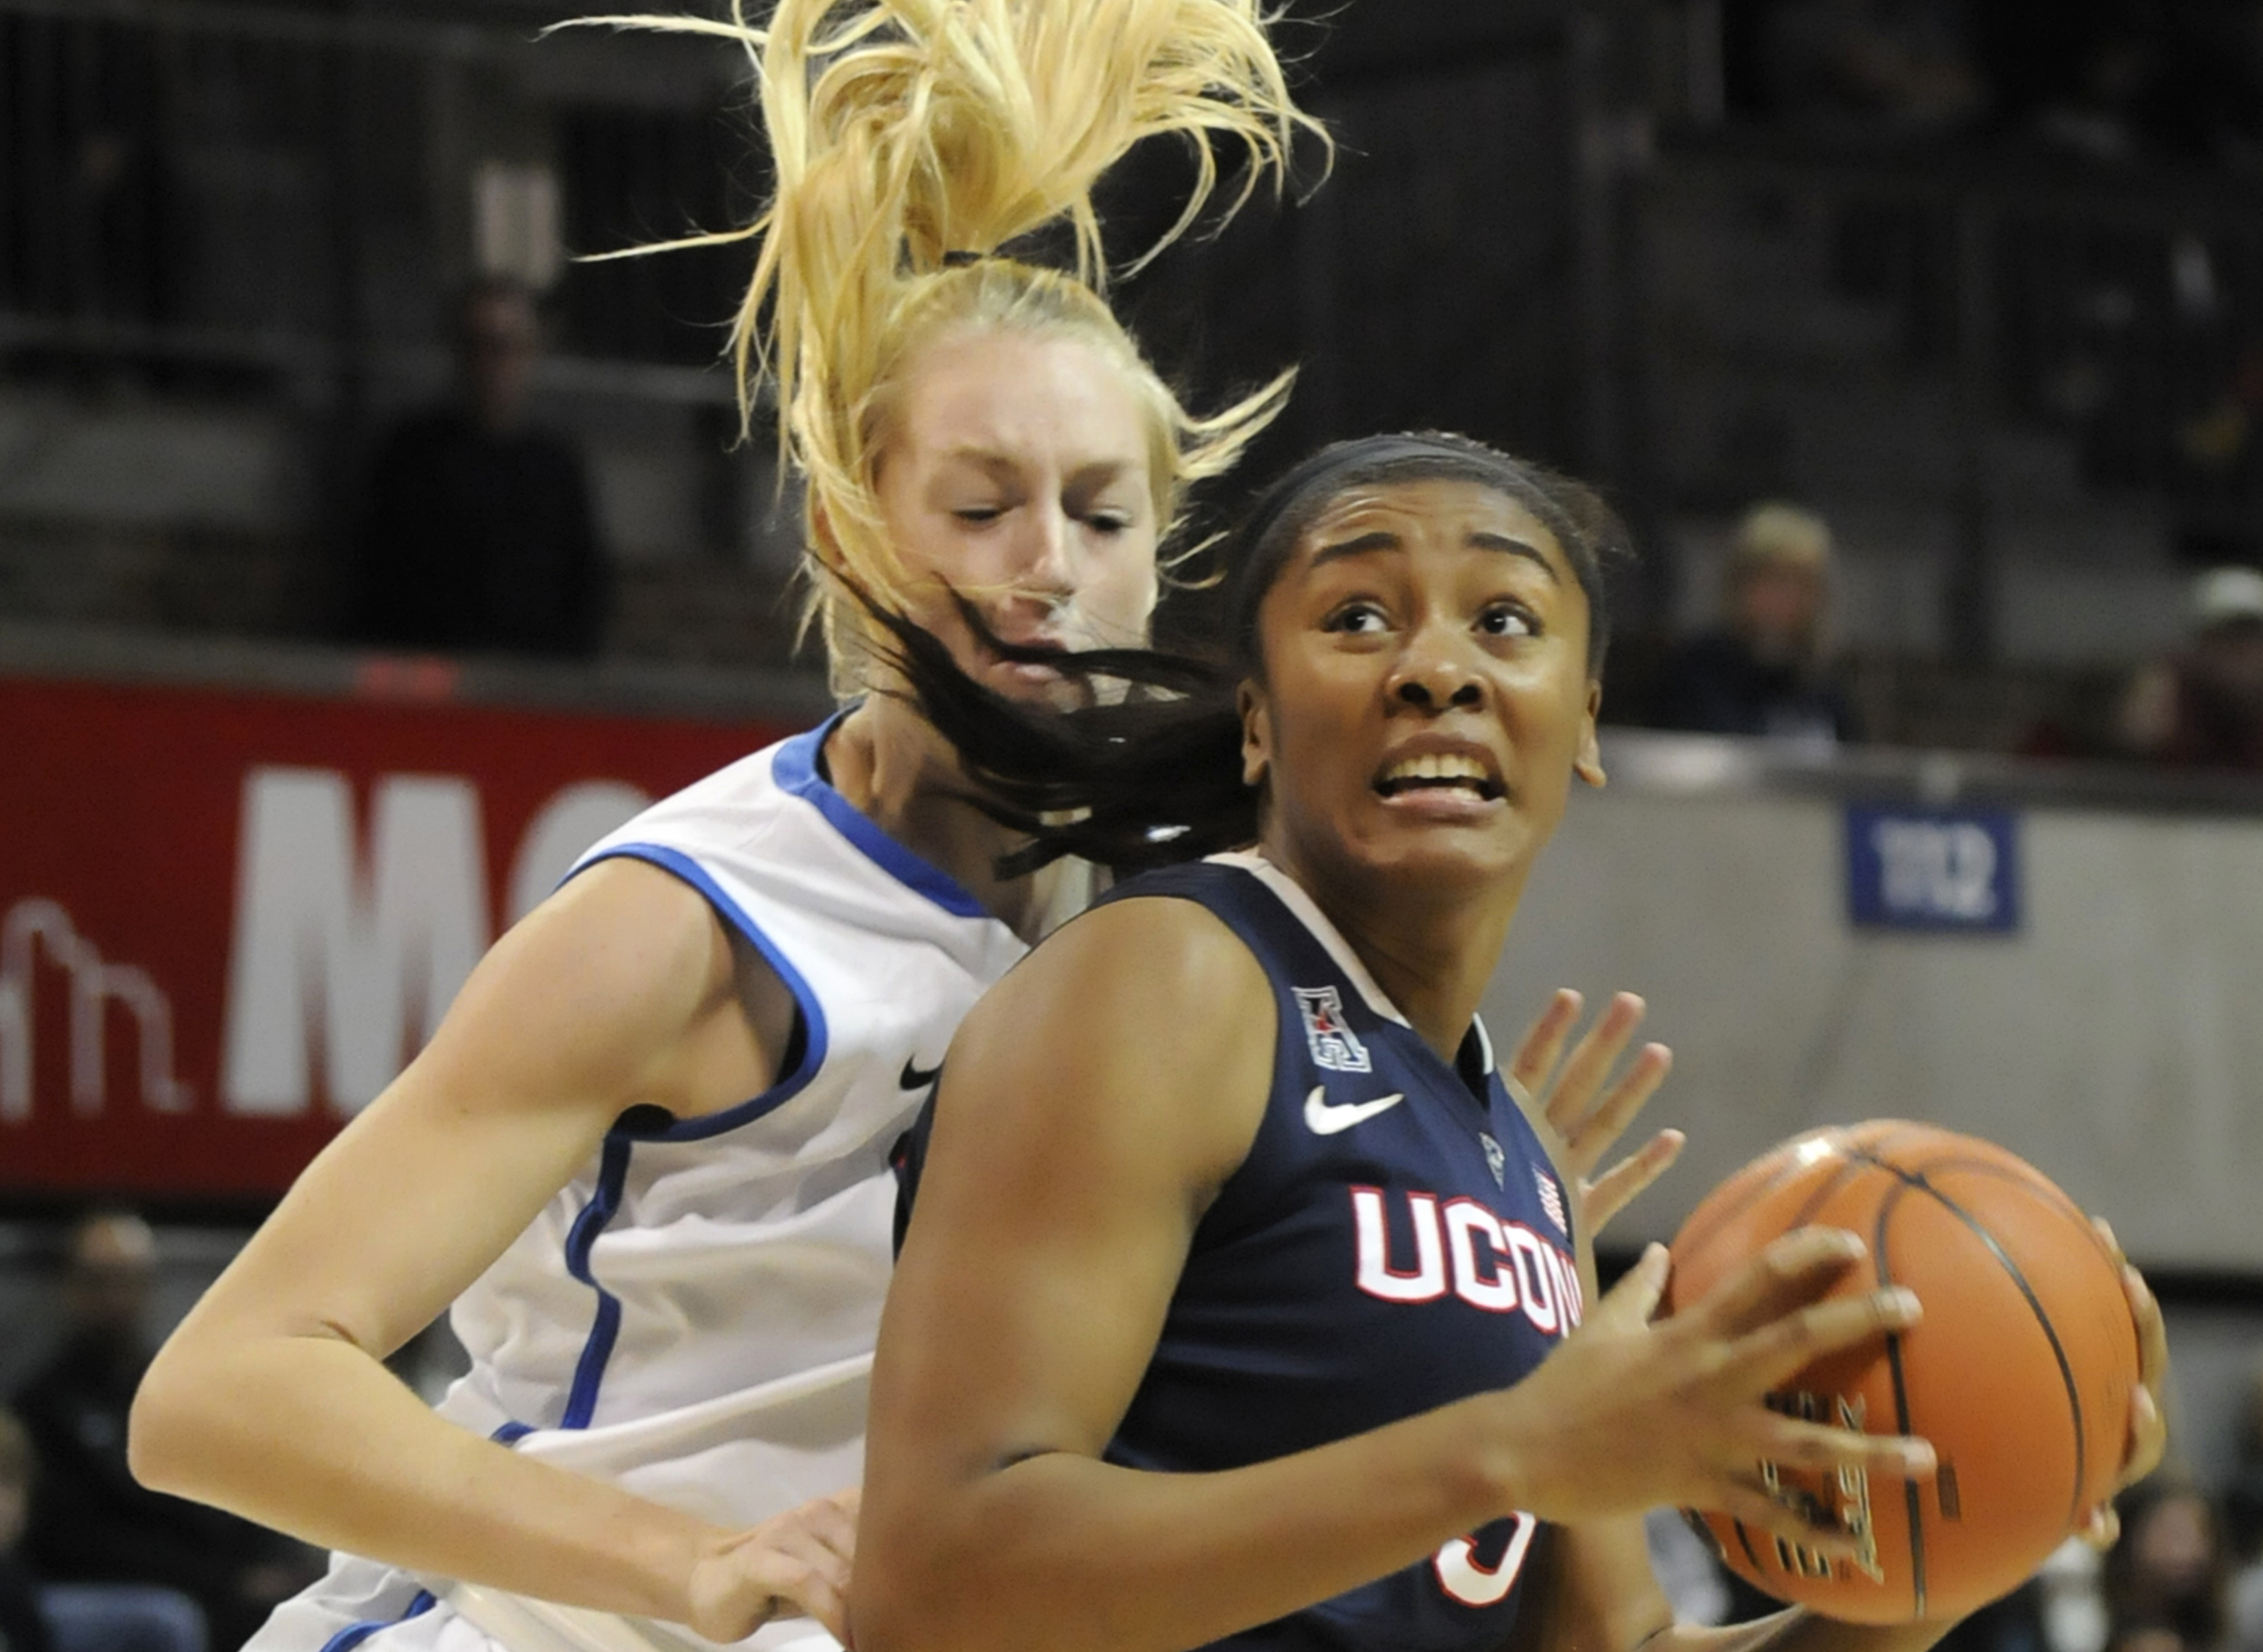 Morgan Tuck spins, defended by SMU forward Stephanie Collins in the 1st half.  Tuck added 5 points.